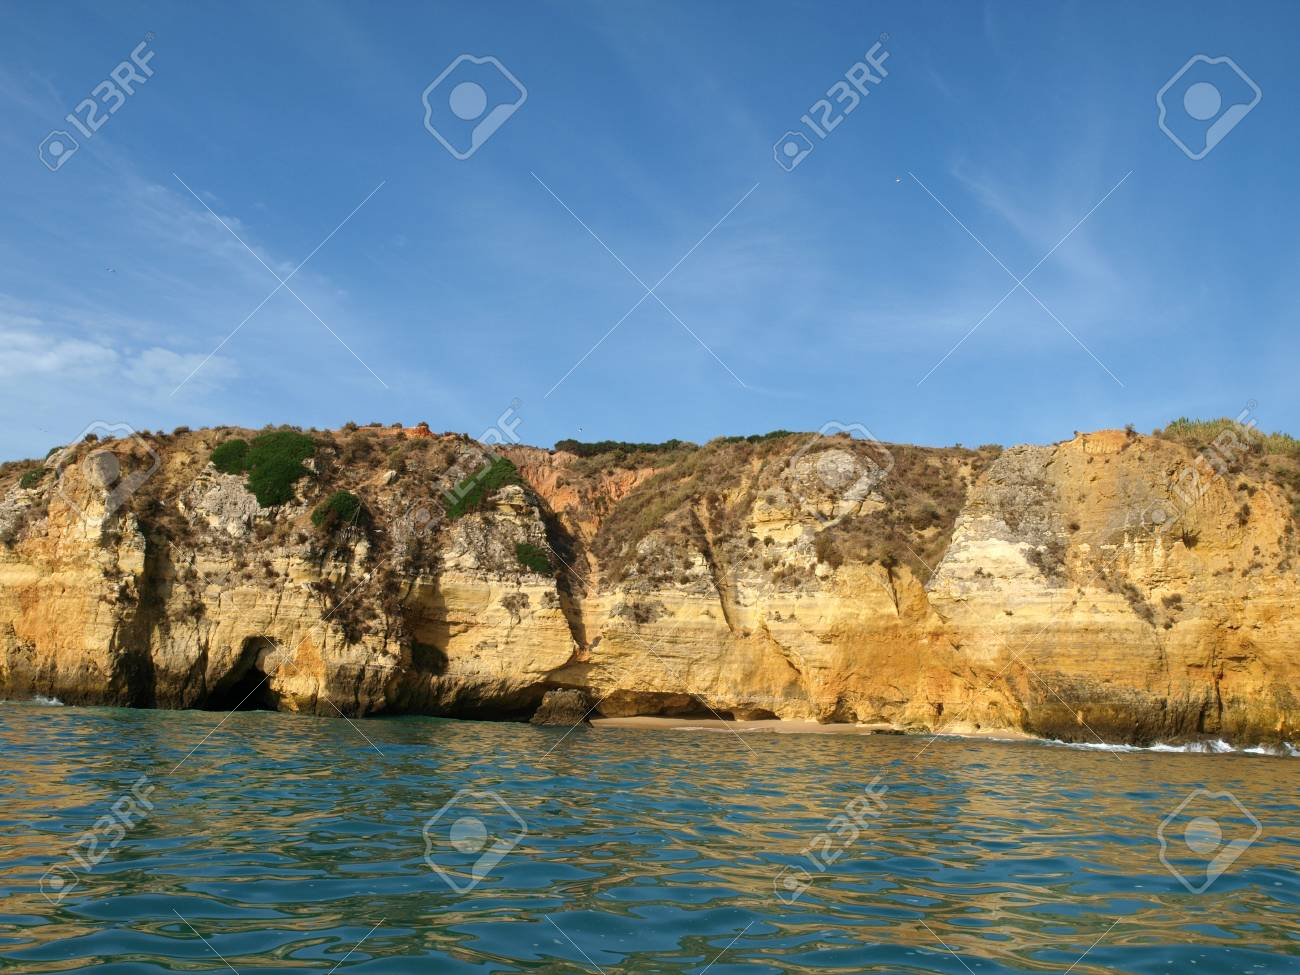 Picturesque Alagarve coast between Lagos and the Cap Vincent Stock Photo - 8307553